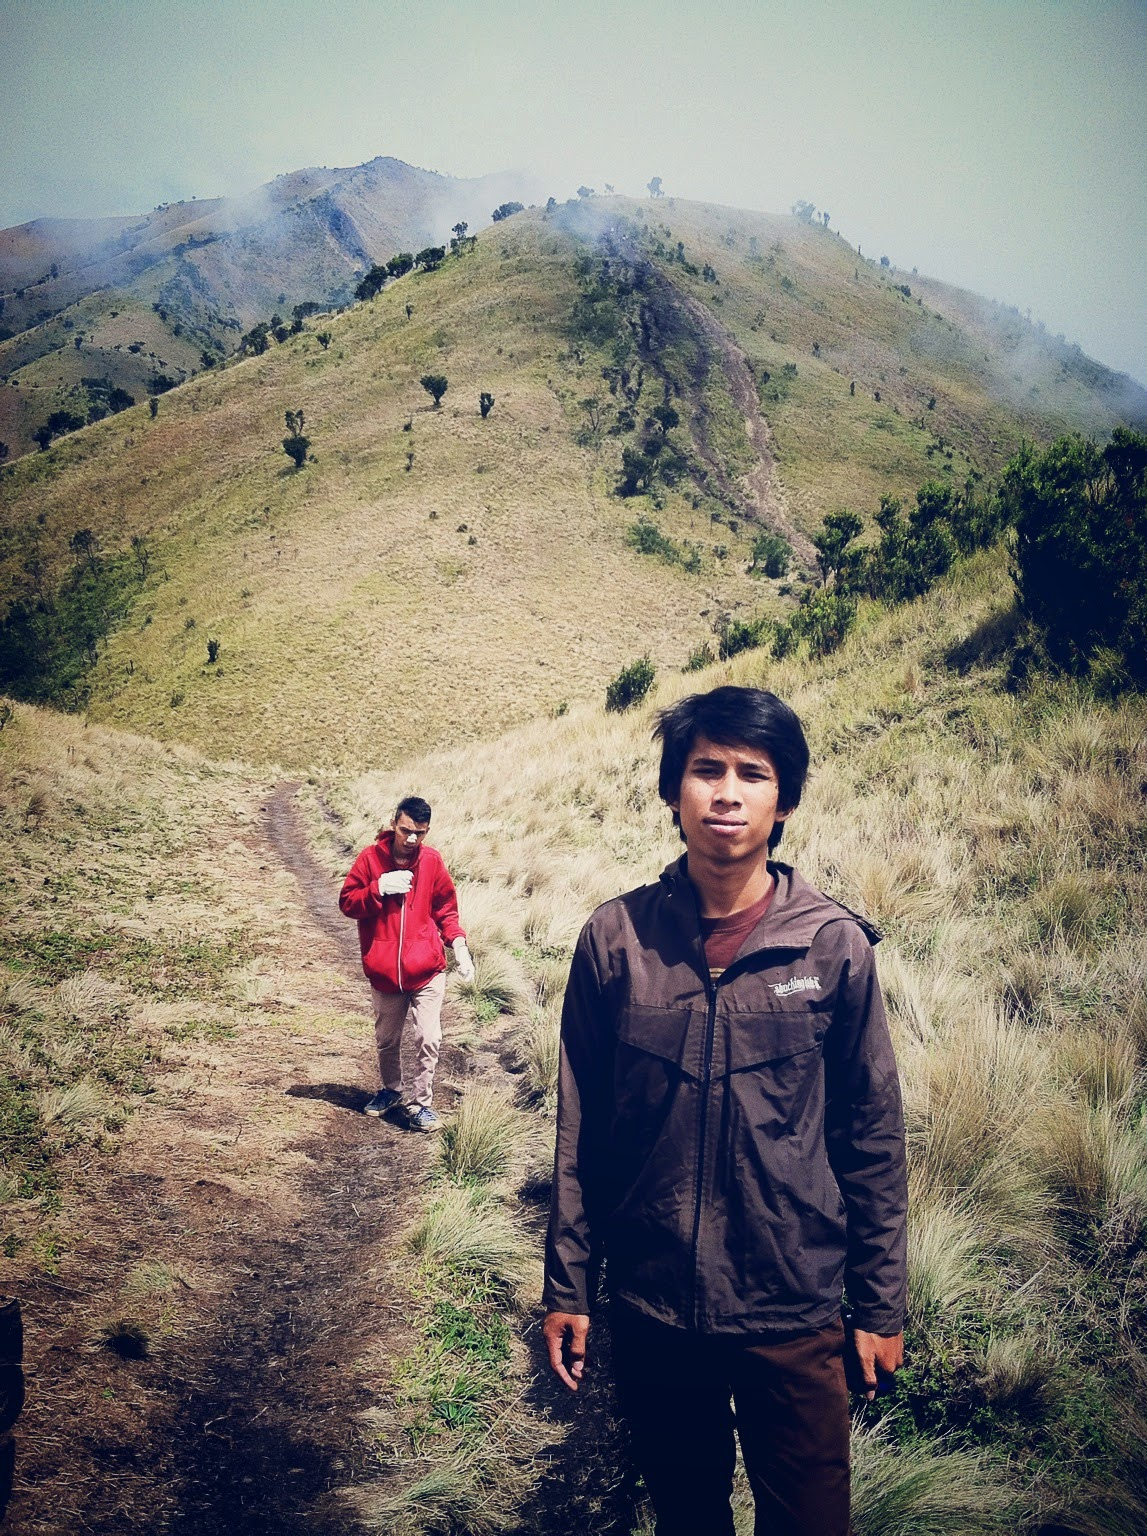 mt.merbabu central java